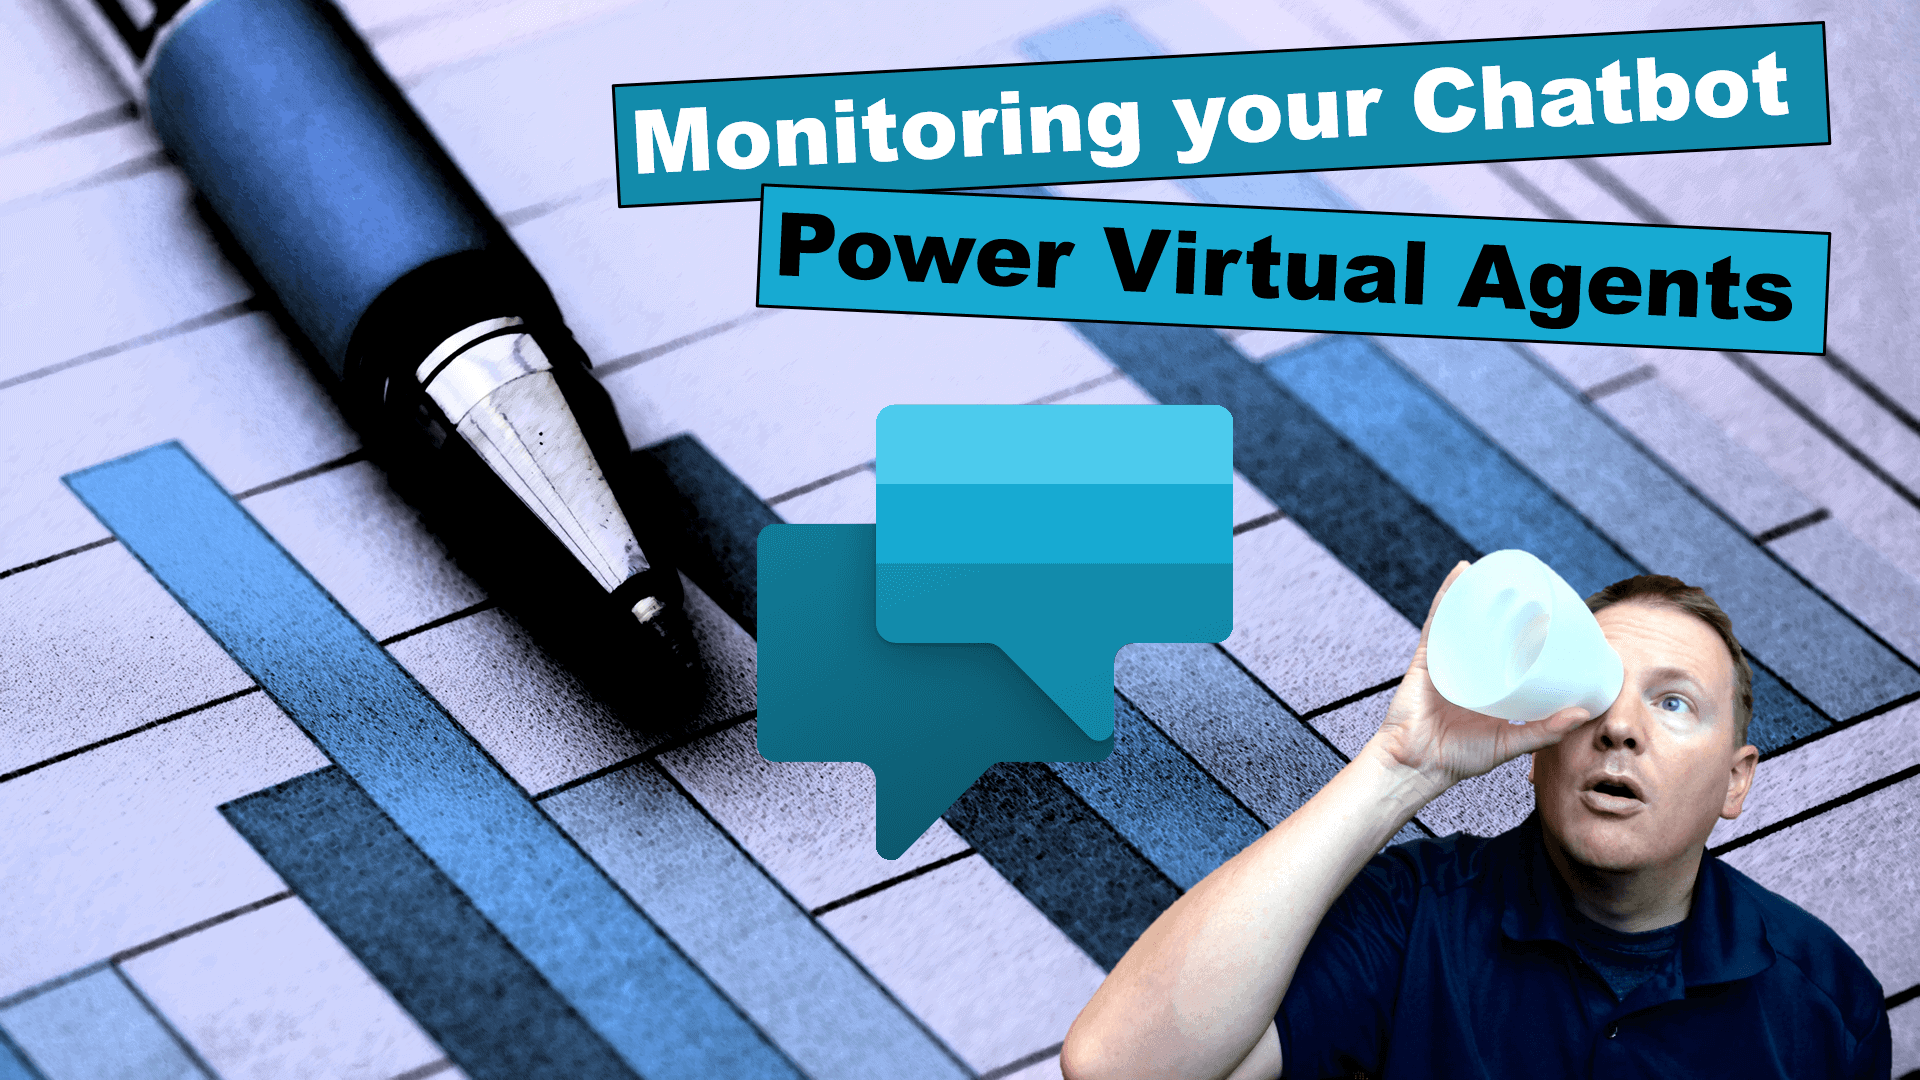 Monitoring your Chatbot Power Virtual Agents cover photo